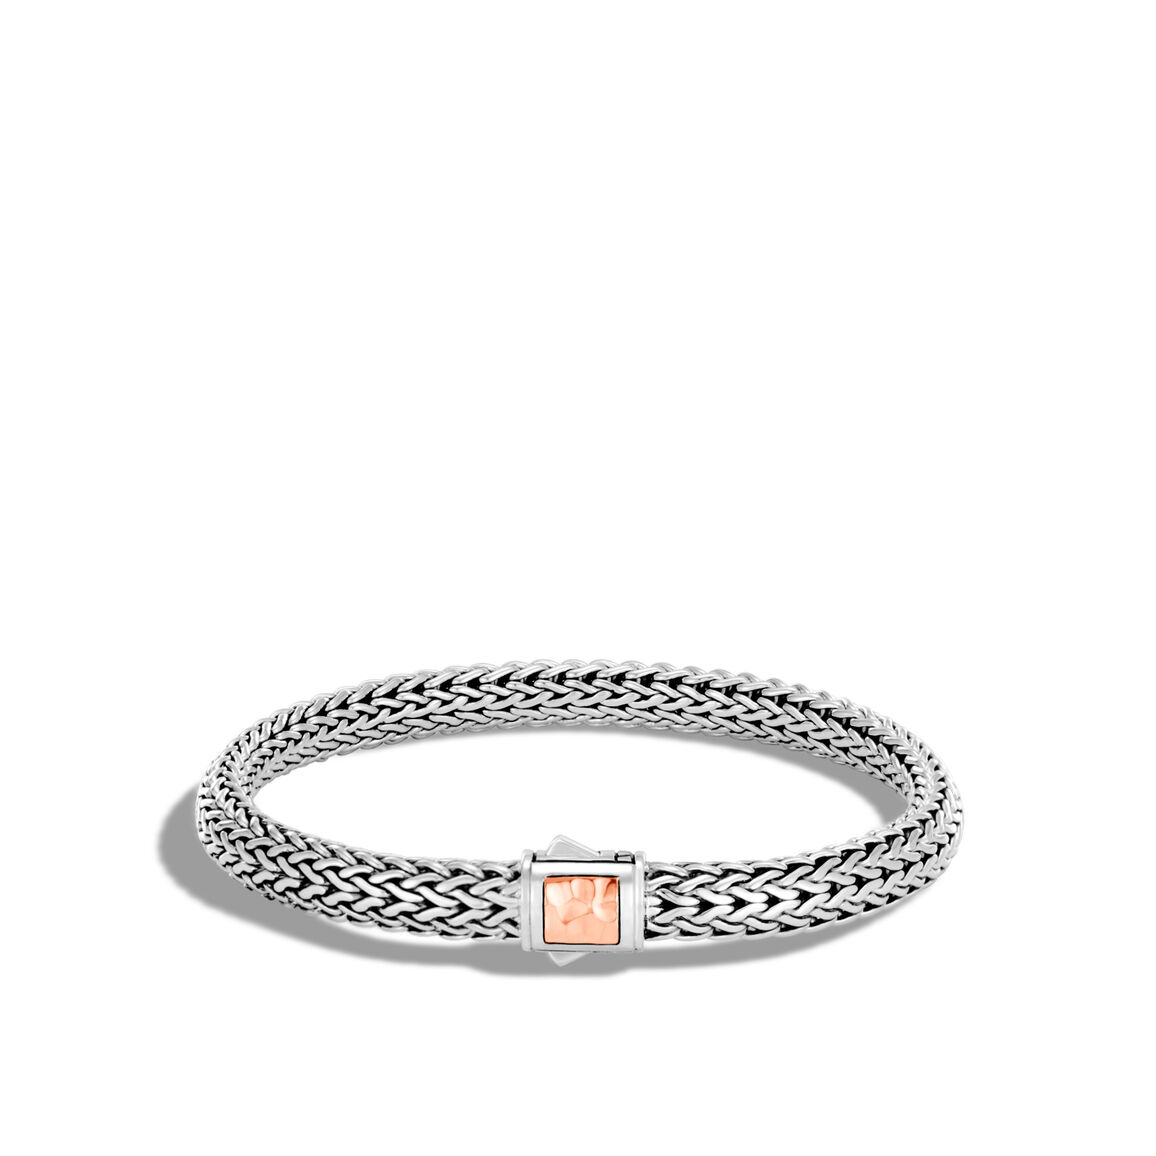 Classic Chain 6.5MM Hammered Clasp Bracelet, Silver, 18K Rose